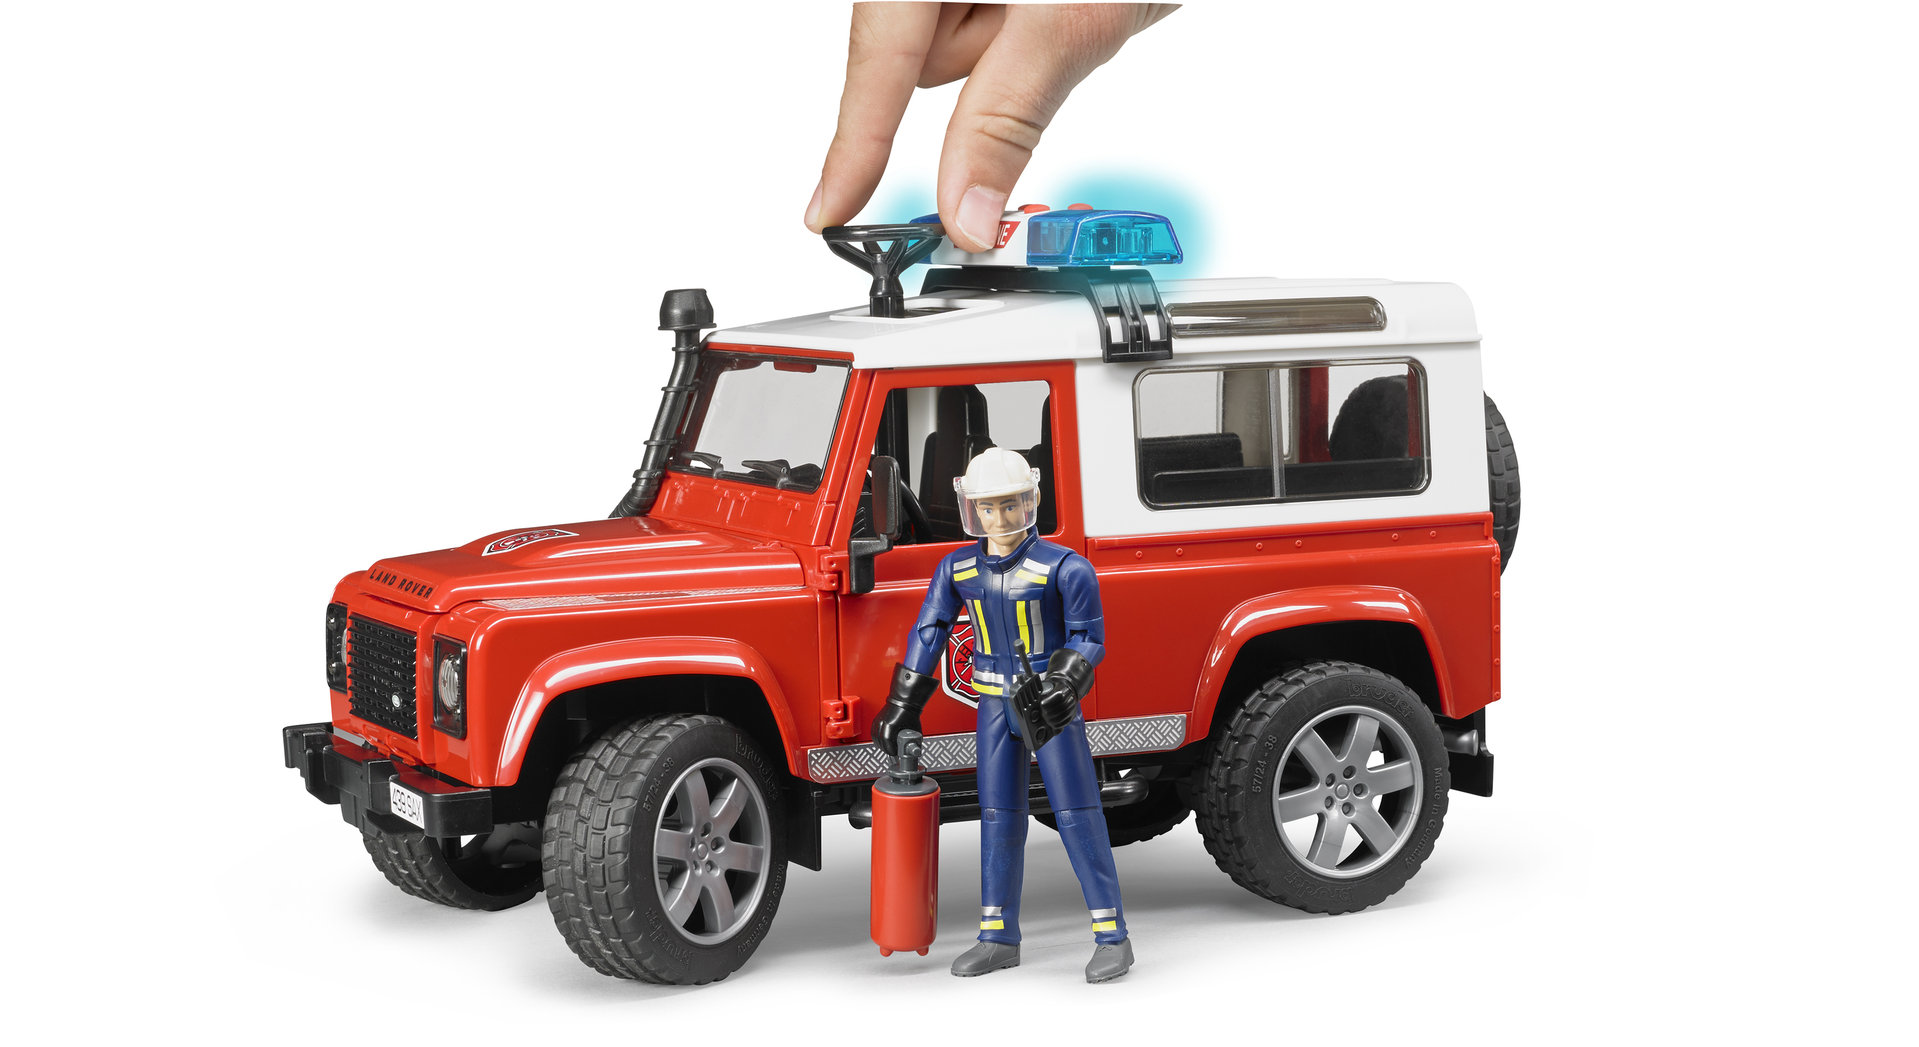 Bruder #02596 Land Rover Fire Department Vehicle with Fireman - New Factory Sealed